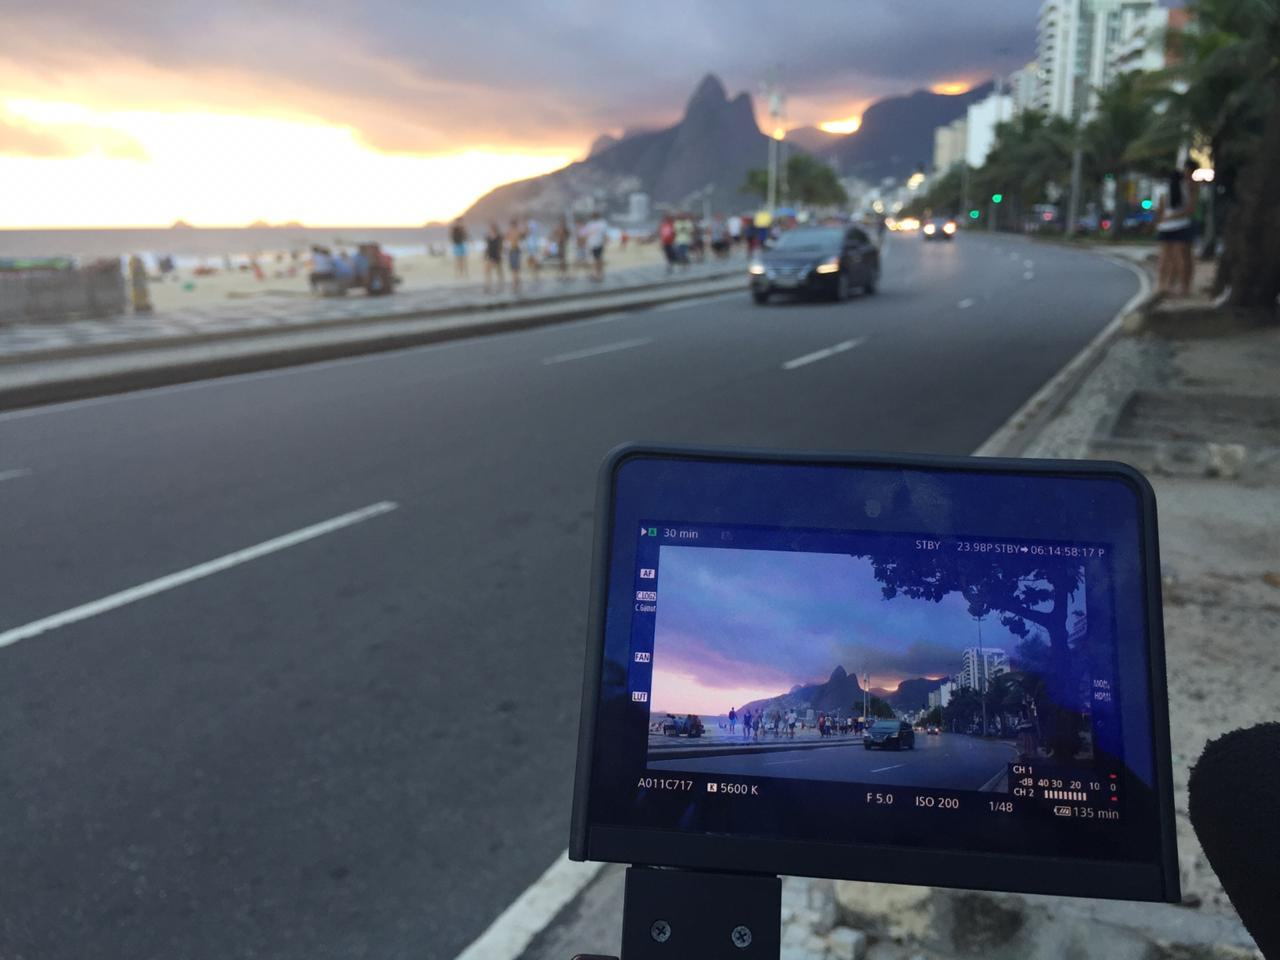 Sunset filming in Ipanema Beach